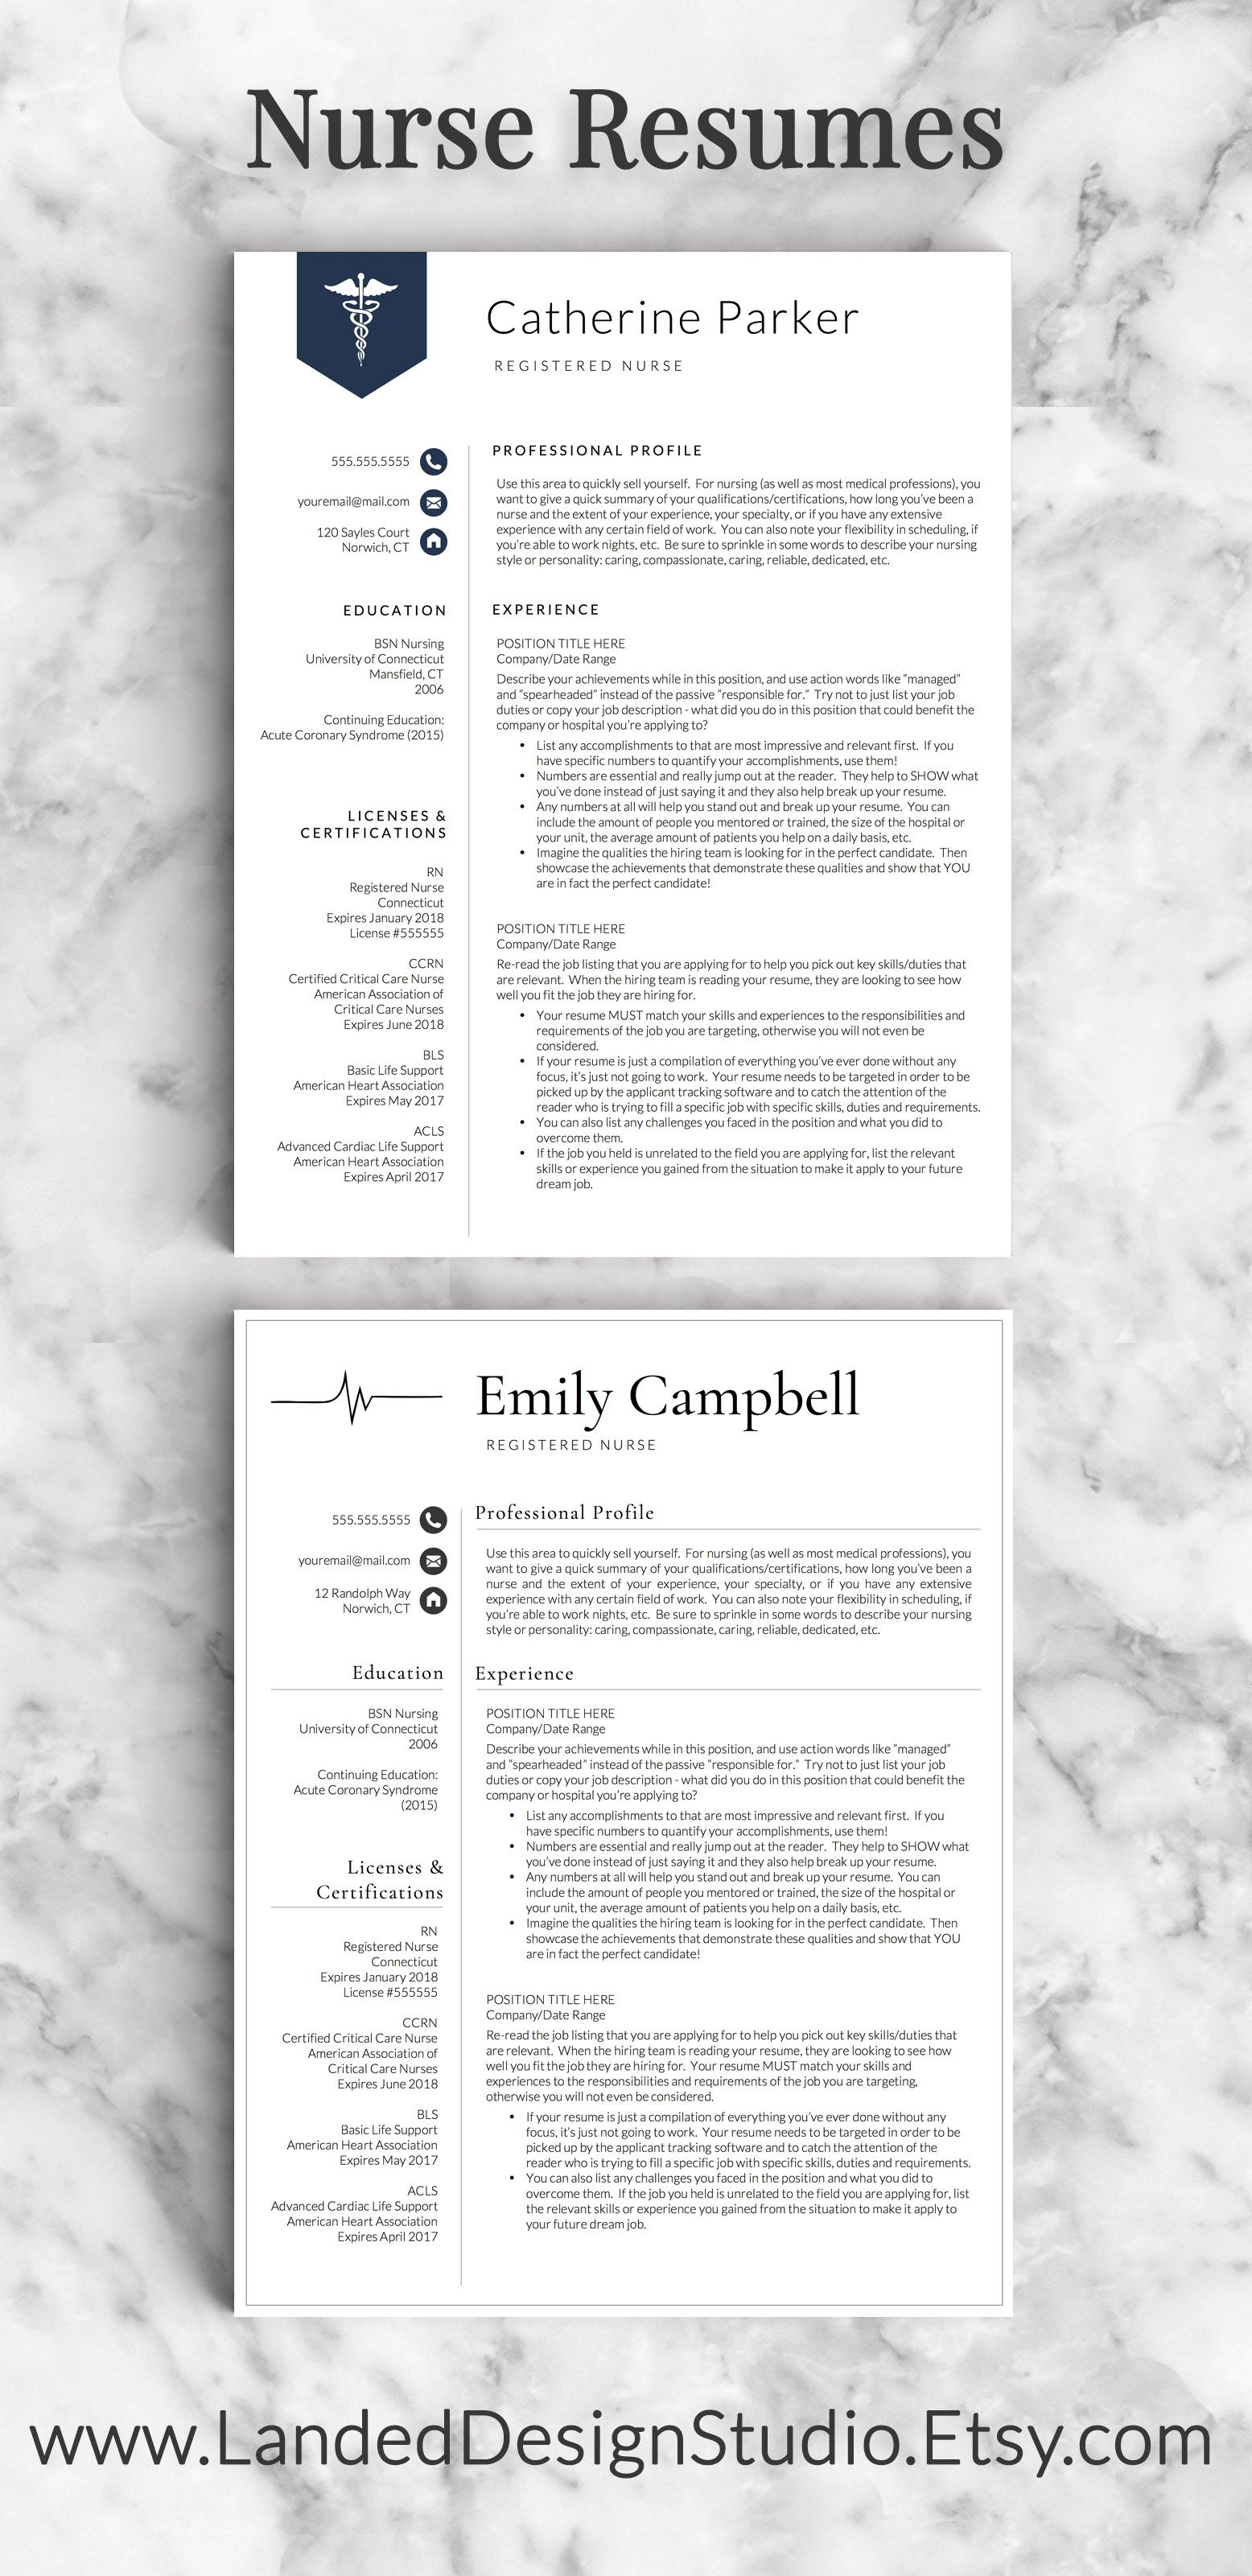 Nurse resume templates makes me want to hurry up and